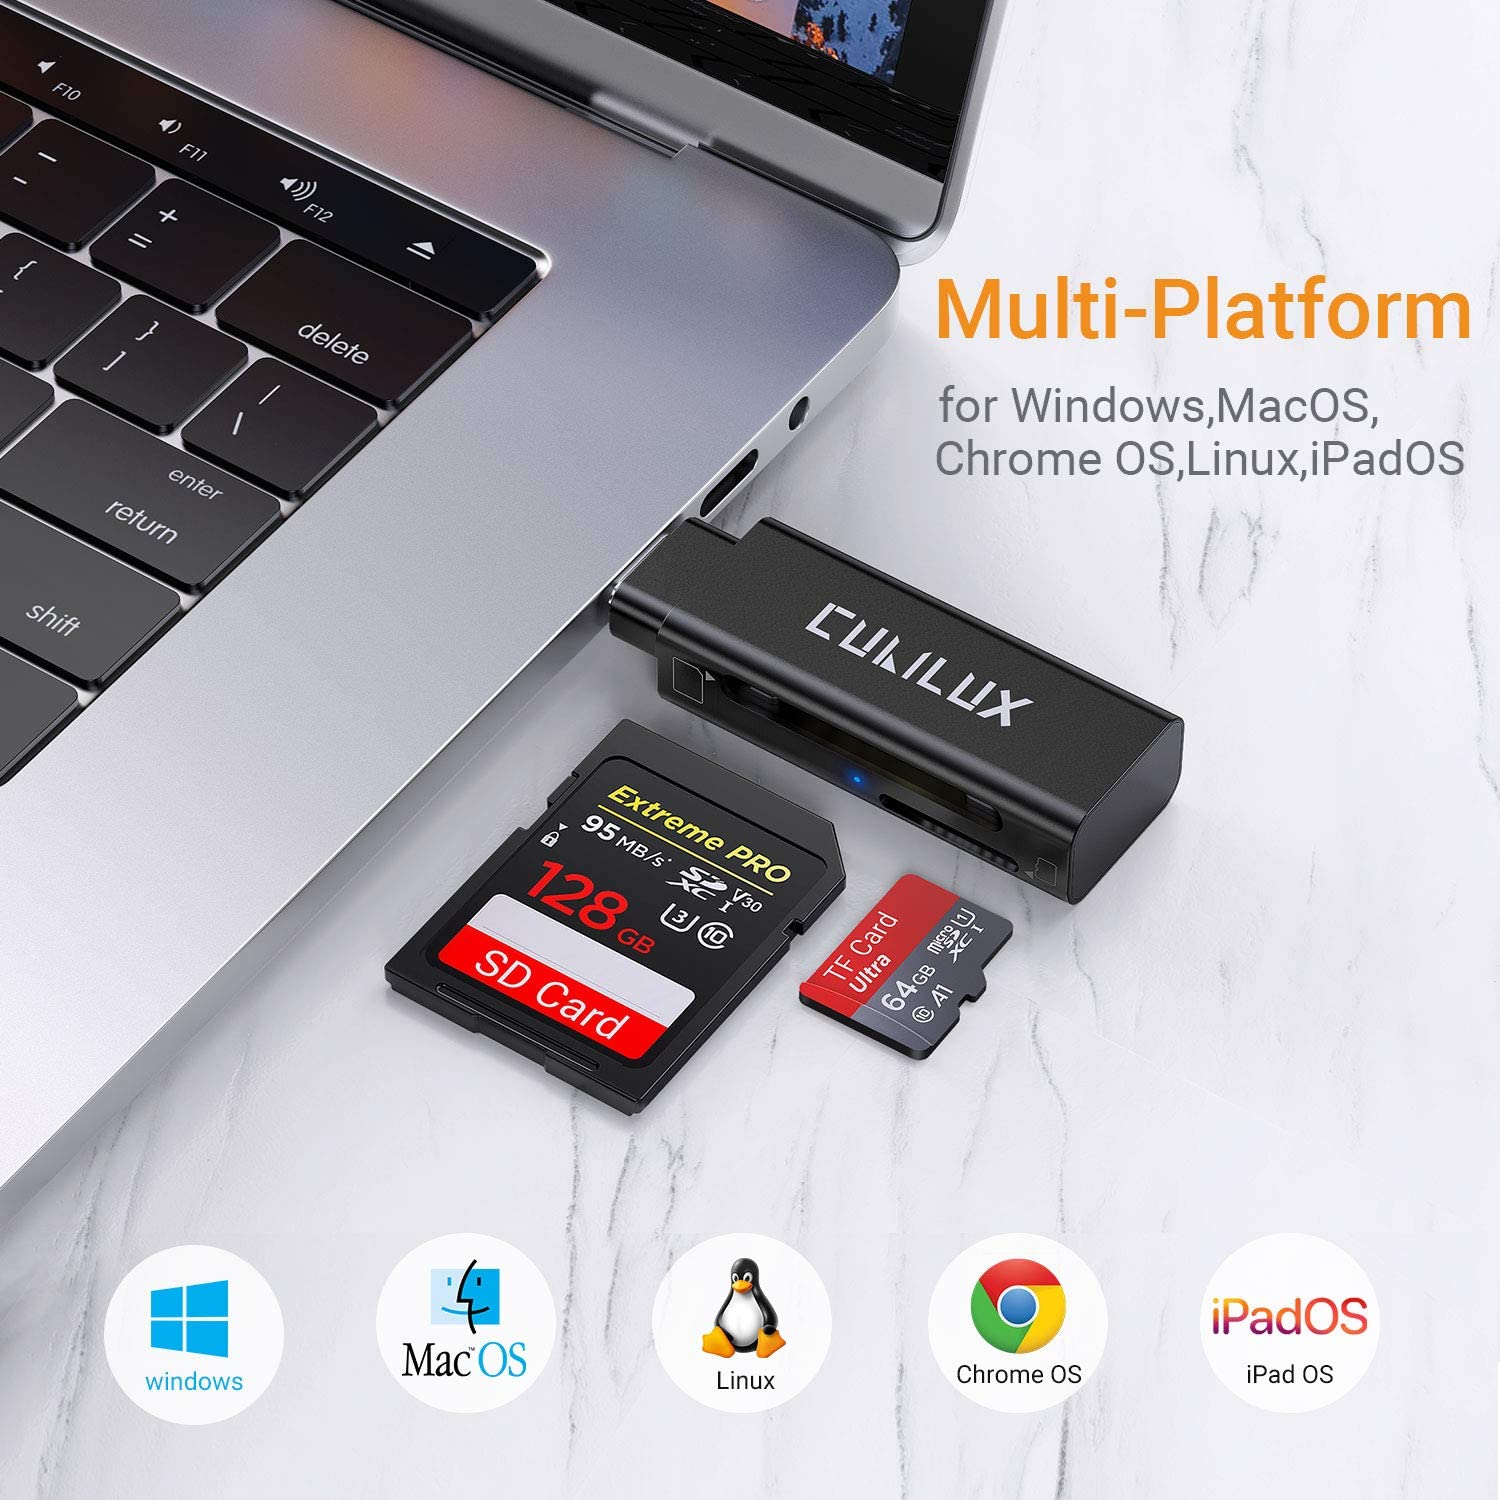 PRO USB 3.0 Card Reader Works for Samsung Galaxy A50s Adapter to Directly Read at 5Gbps Your MicroSDHC MicroSDXC Cards